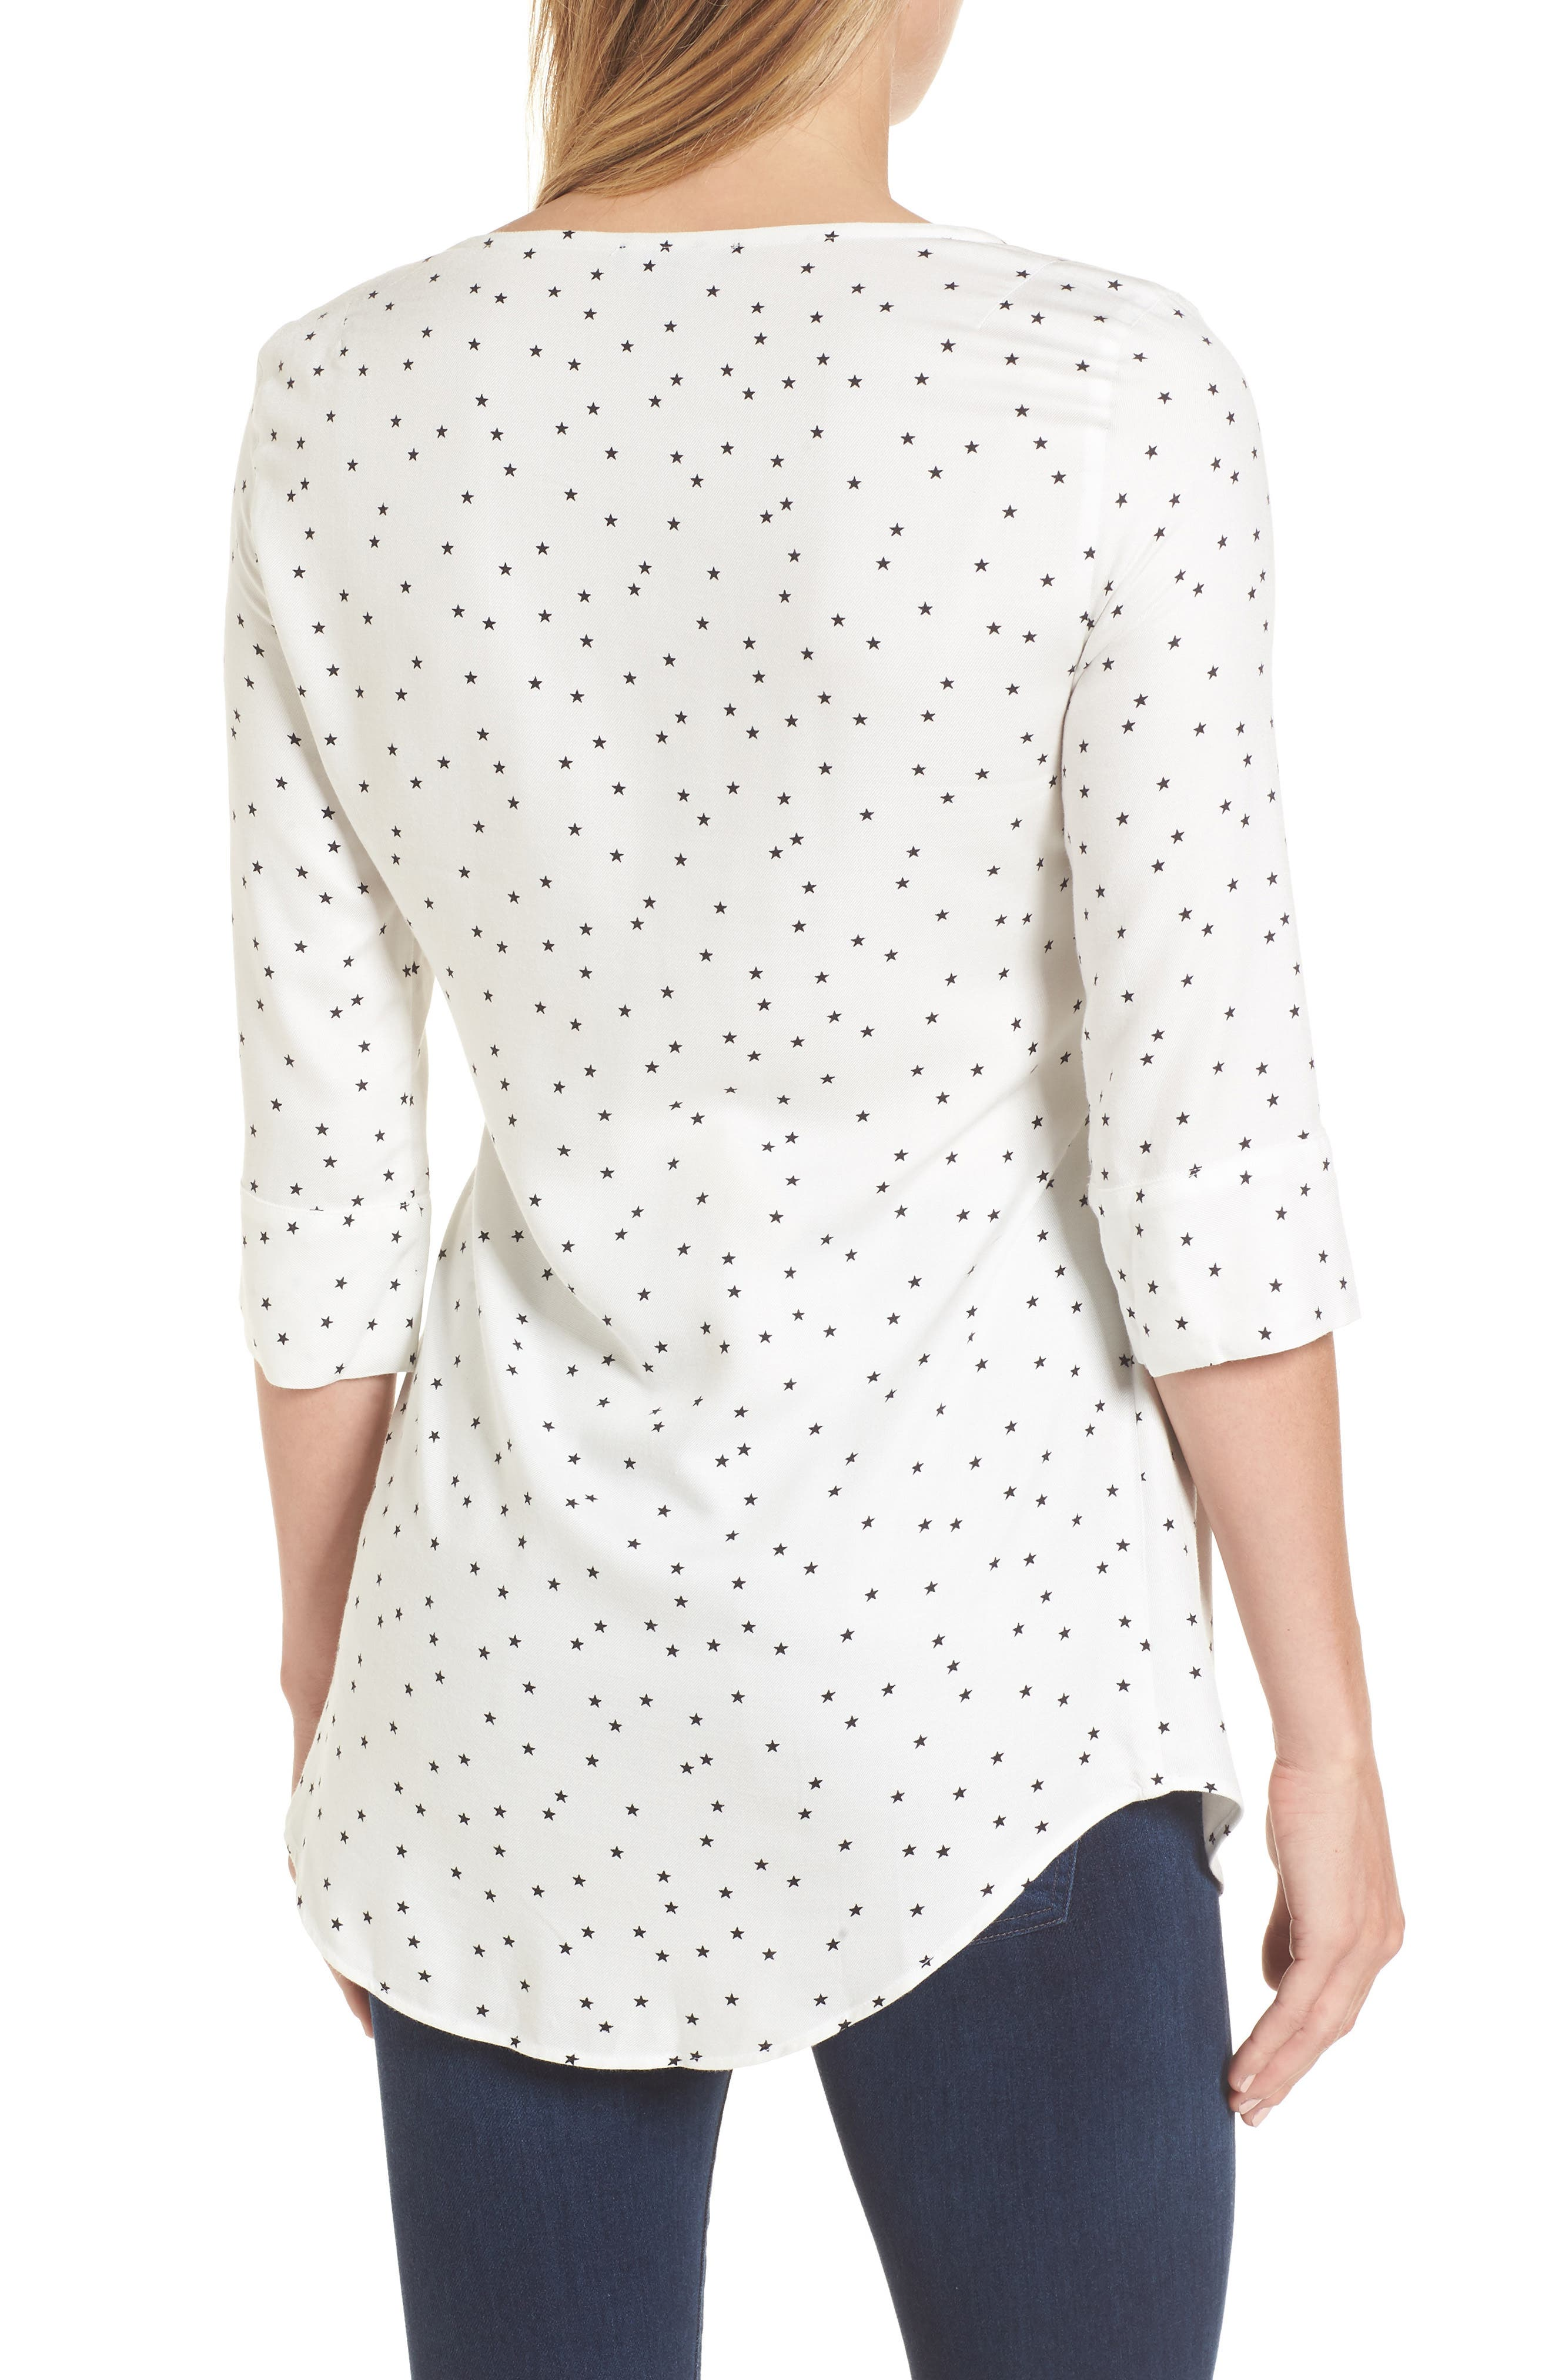 Selina Tie Front Maternity Top,                             Alternate thumbnail 2, color,                             Off White Star Print